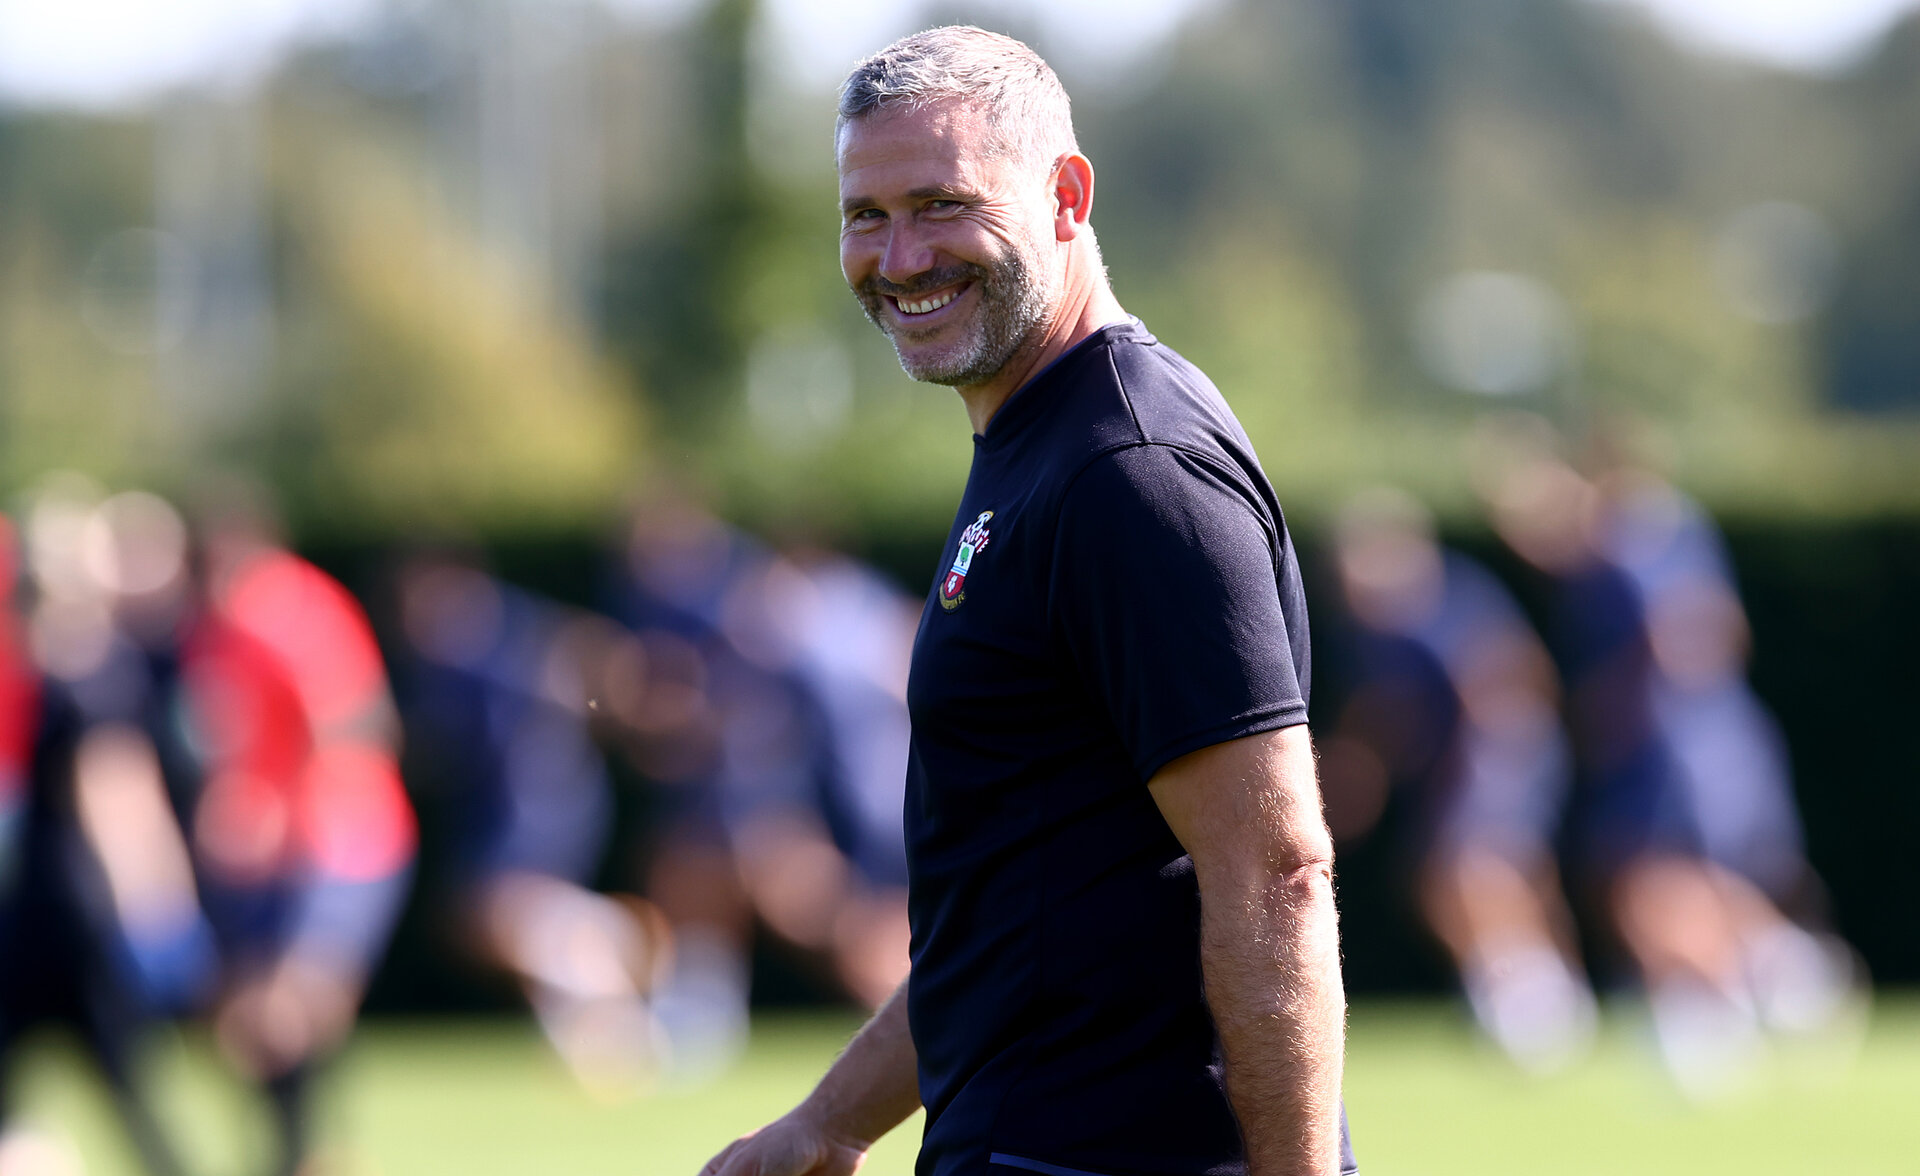 SOUTHAMPTON, ENGLAND - SEPTEMBER 14: Kelvin Davis during a Southampton FC training session at the Staplewood Campus on September 14, 2020 in Southampton, England. (Photo by Matt Watson/Southampton FC via Getty Images)